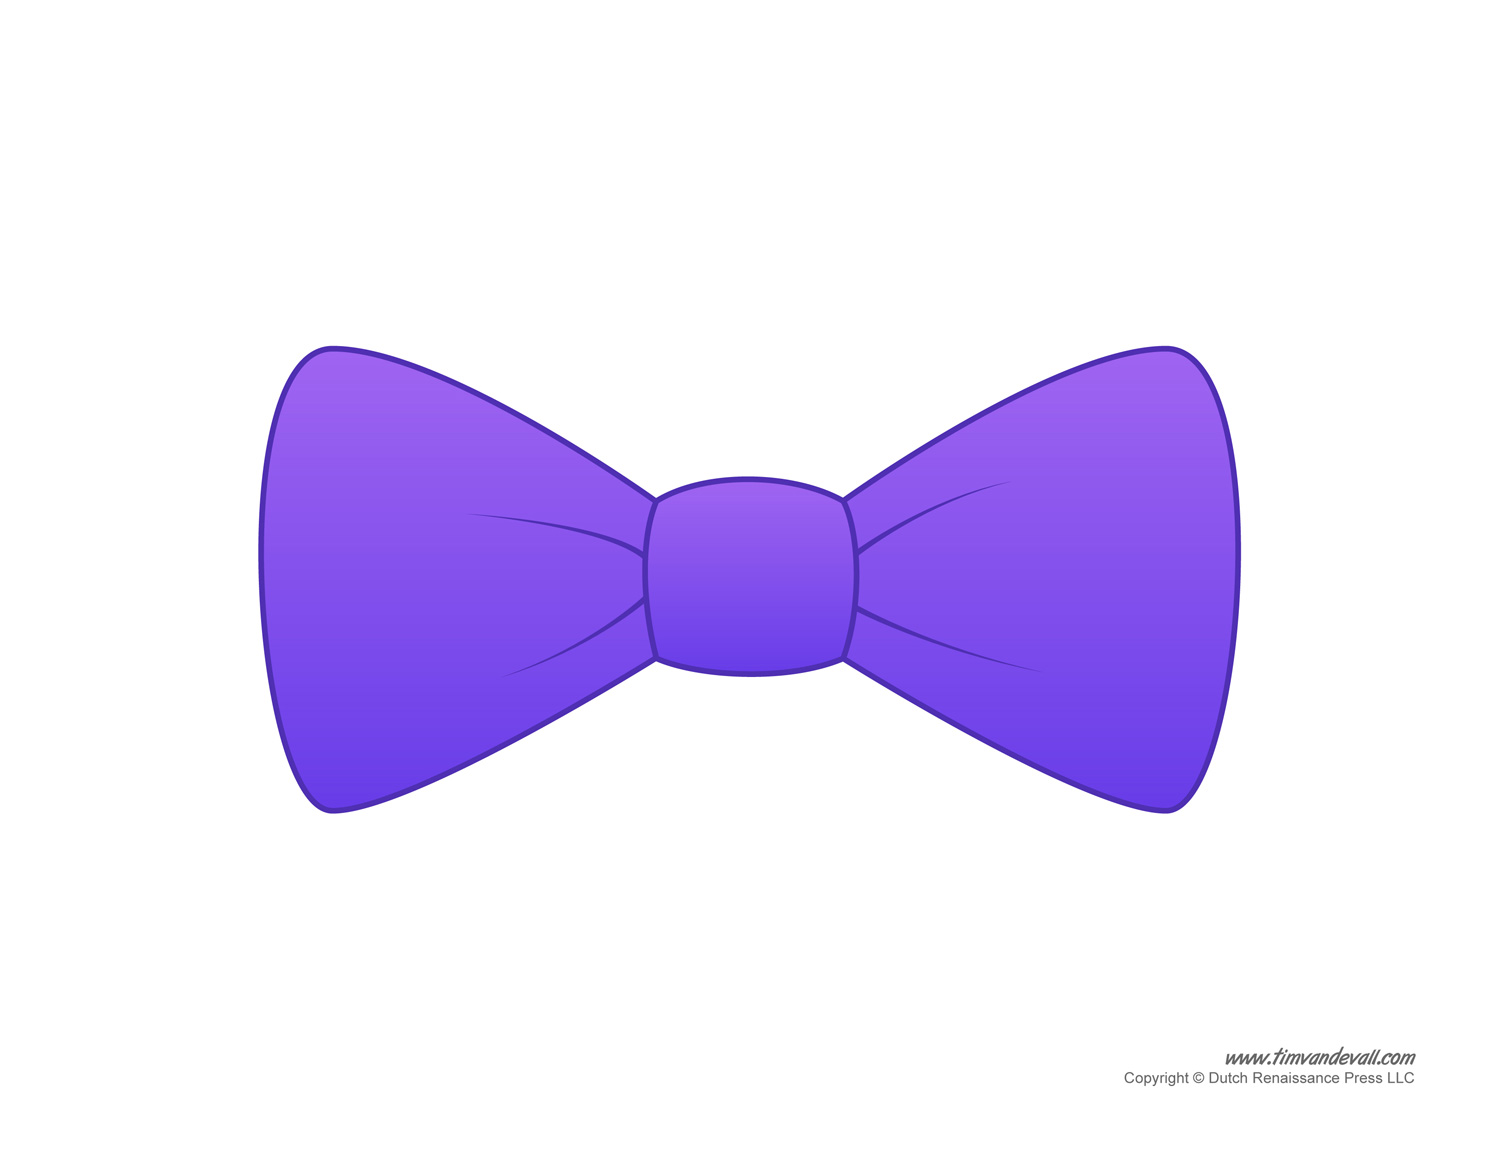 Bow Tie Cartoon - ClipArt Best